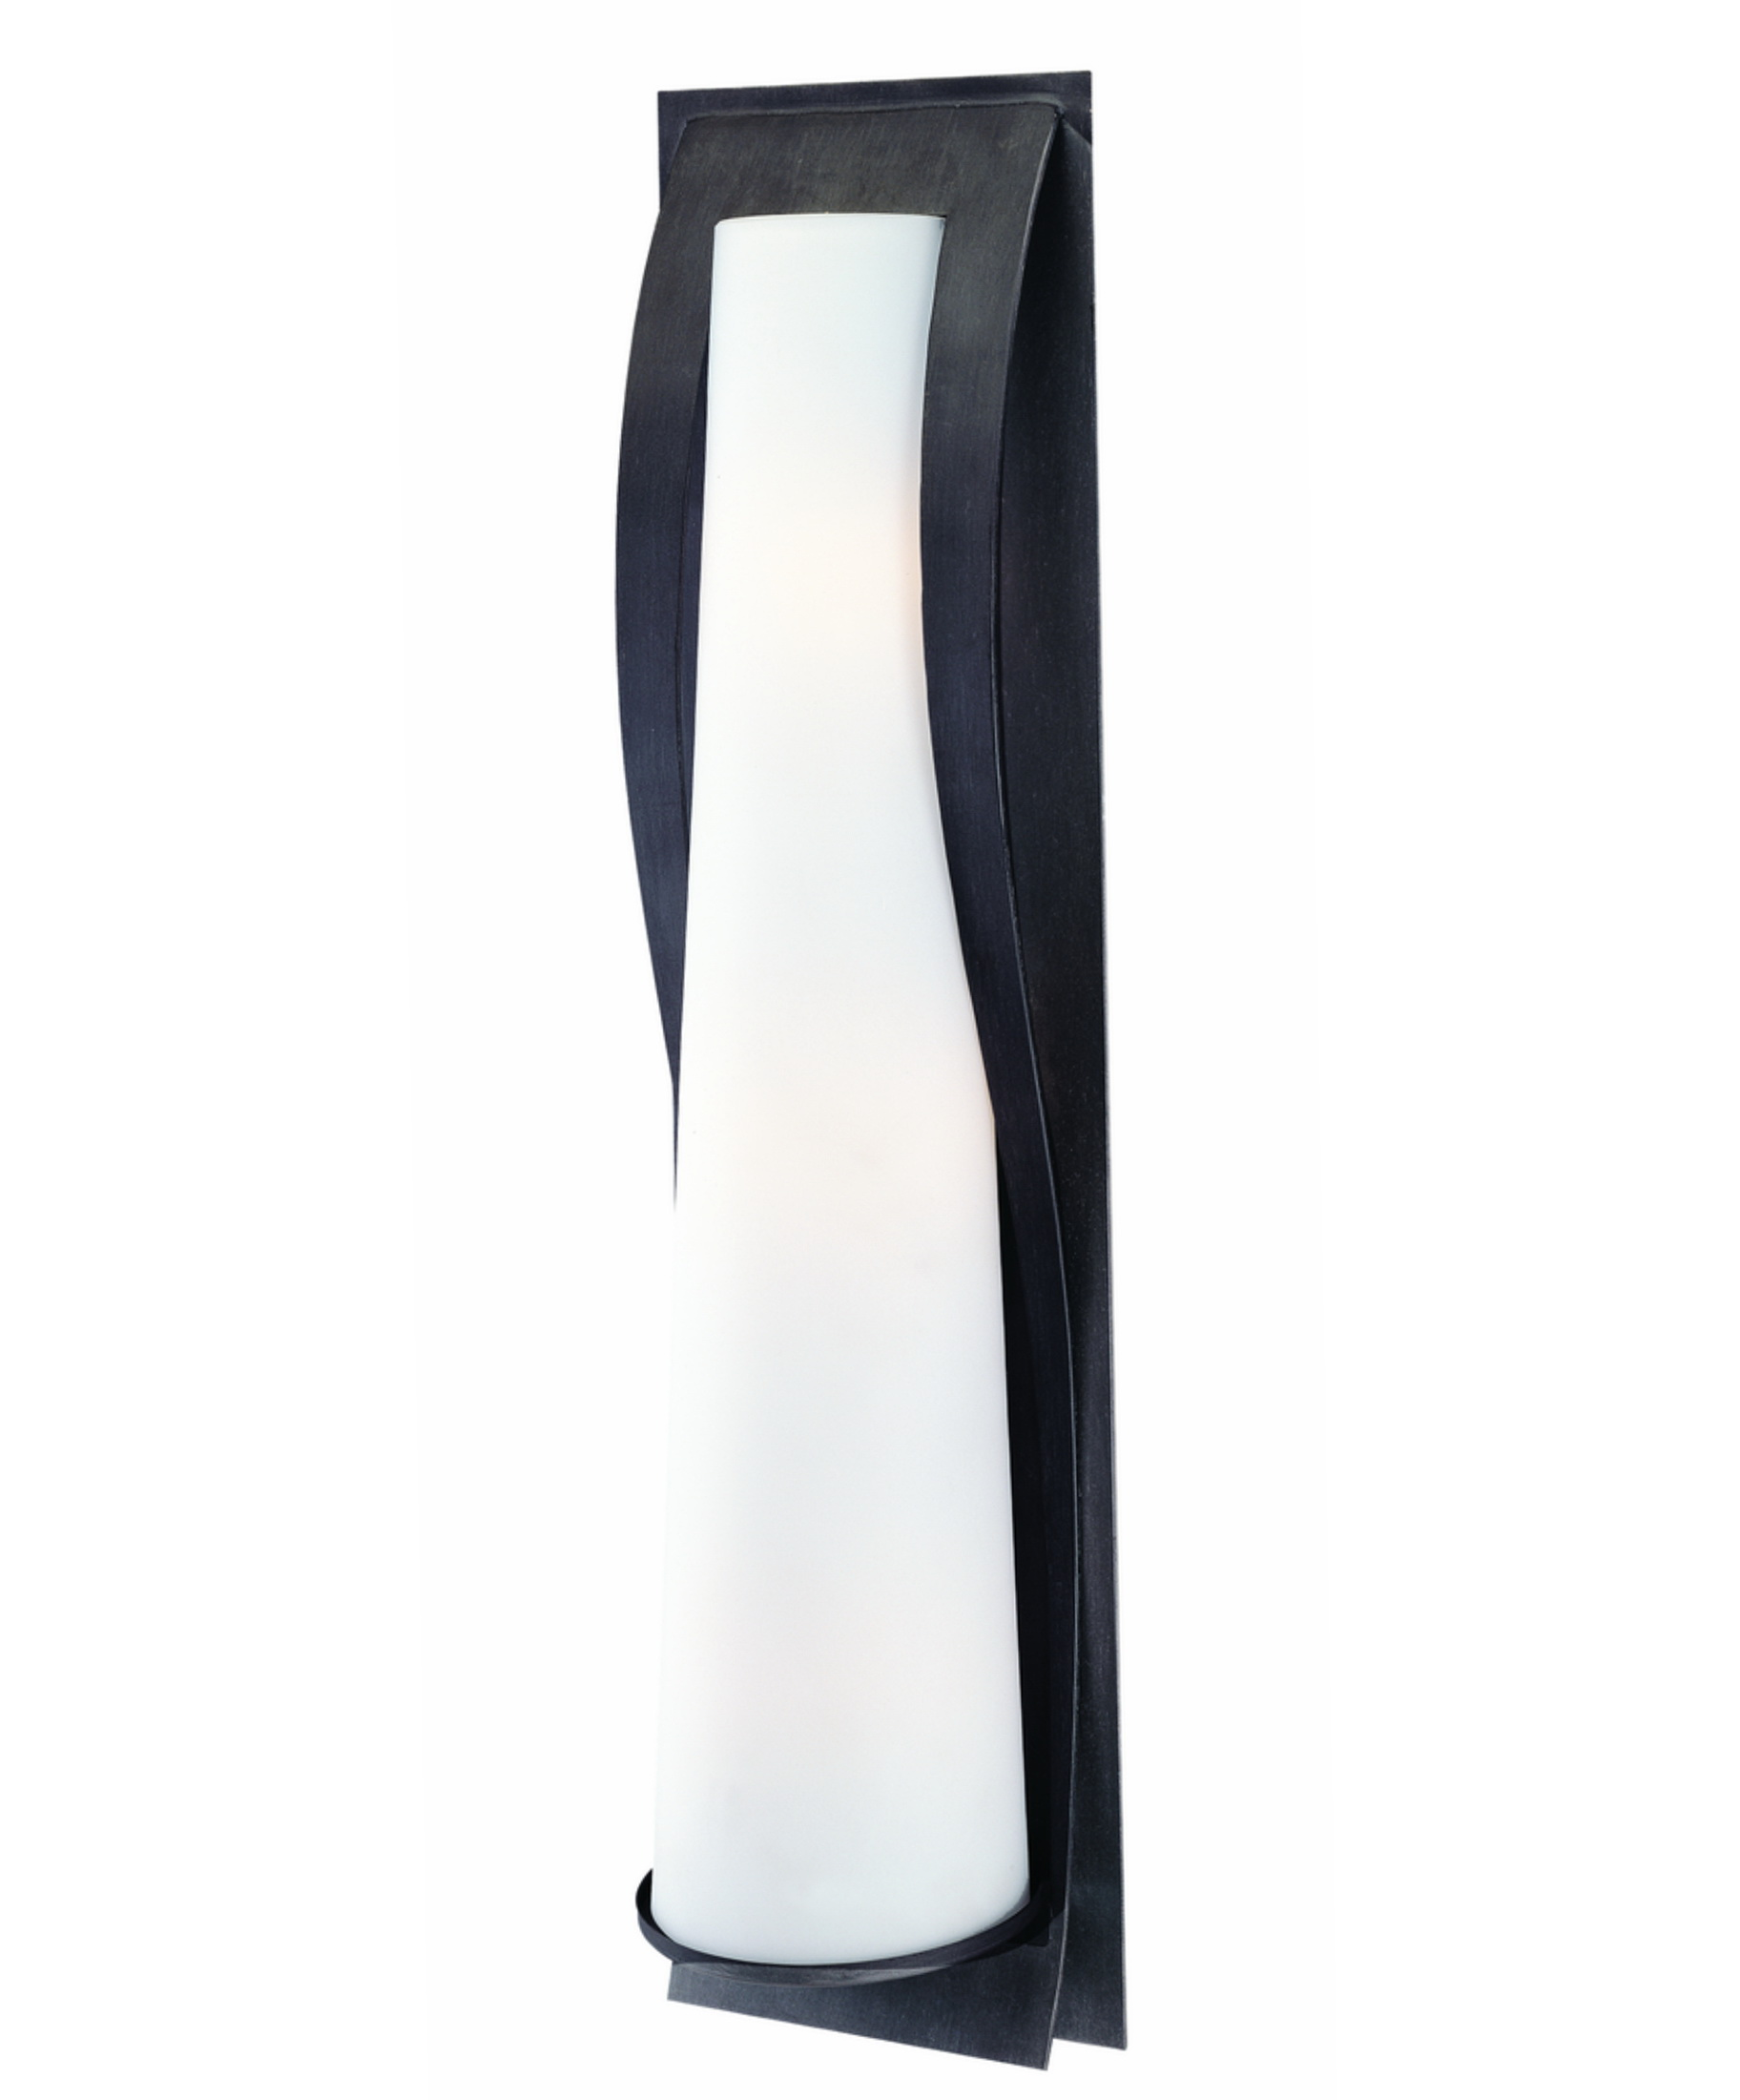 Permalink to Modern Outdoor Wall Sconce Lighting